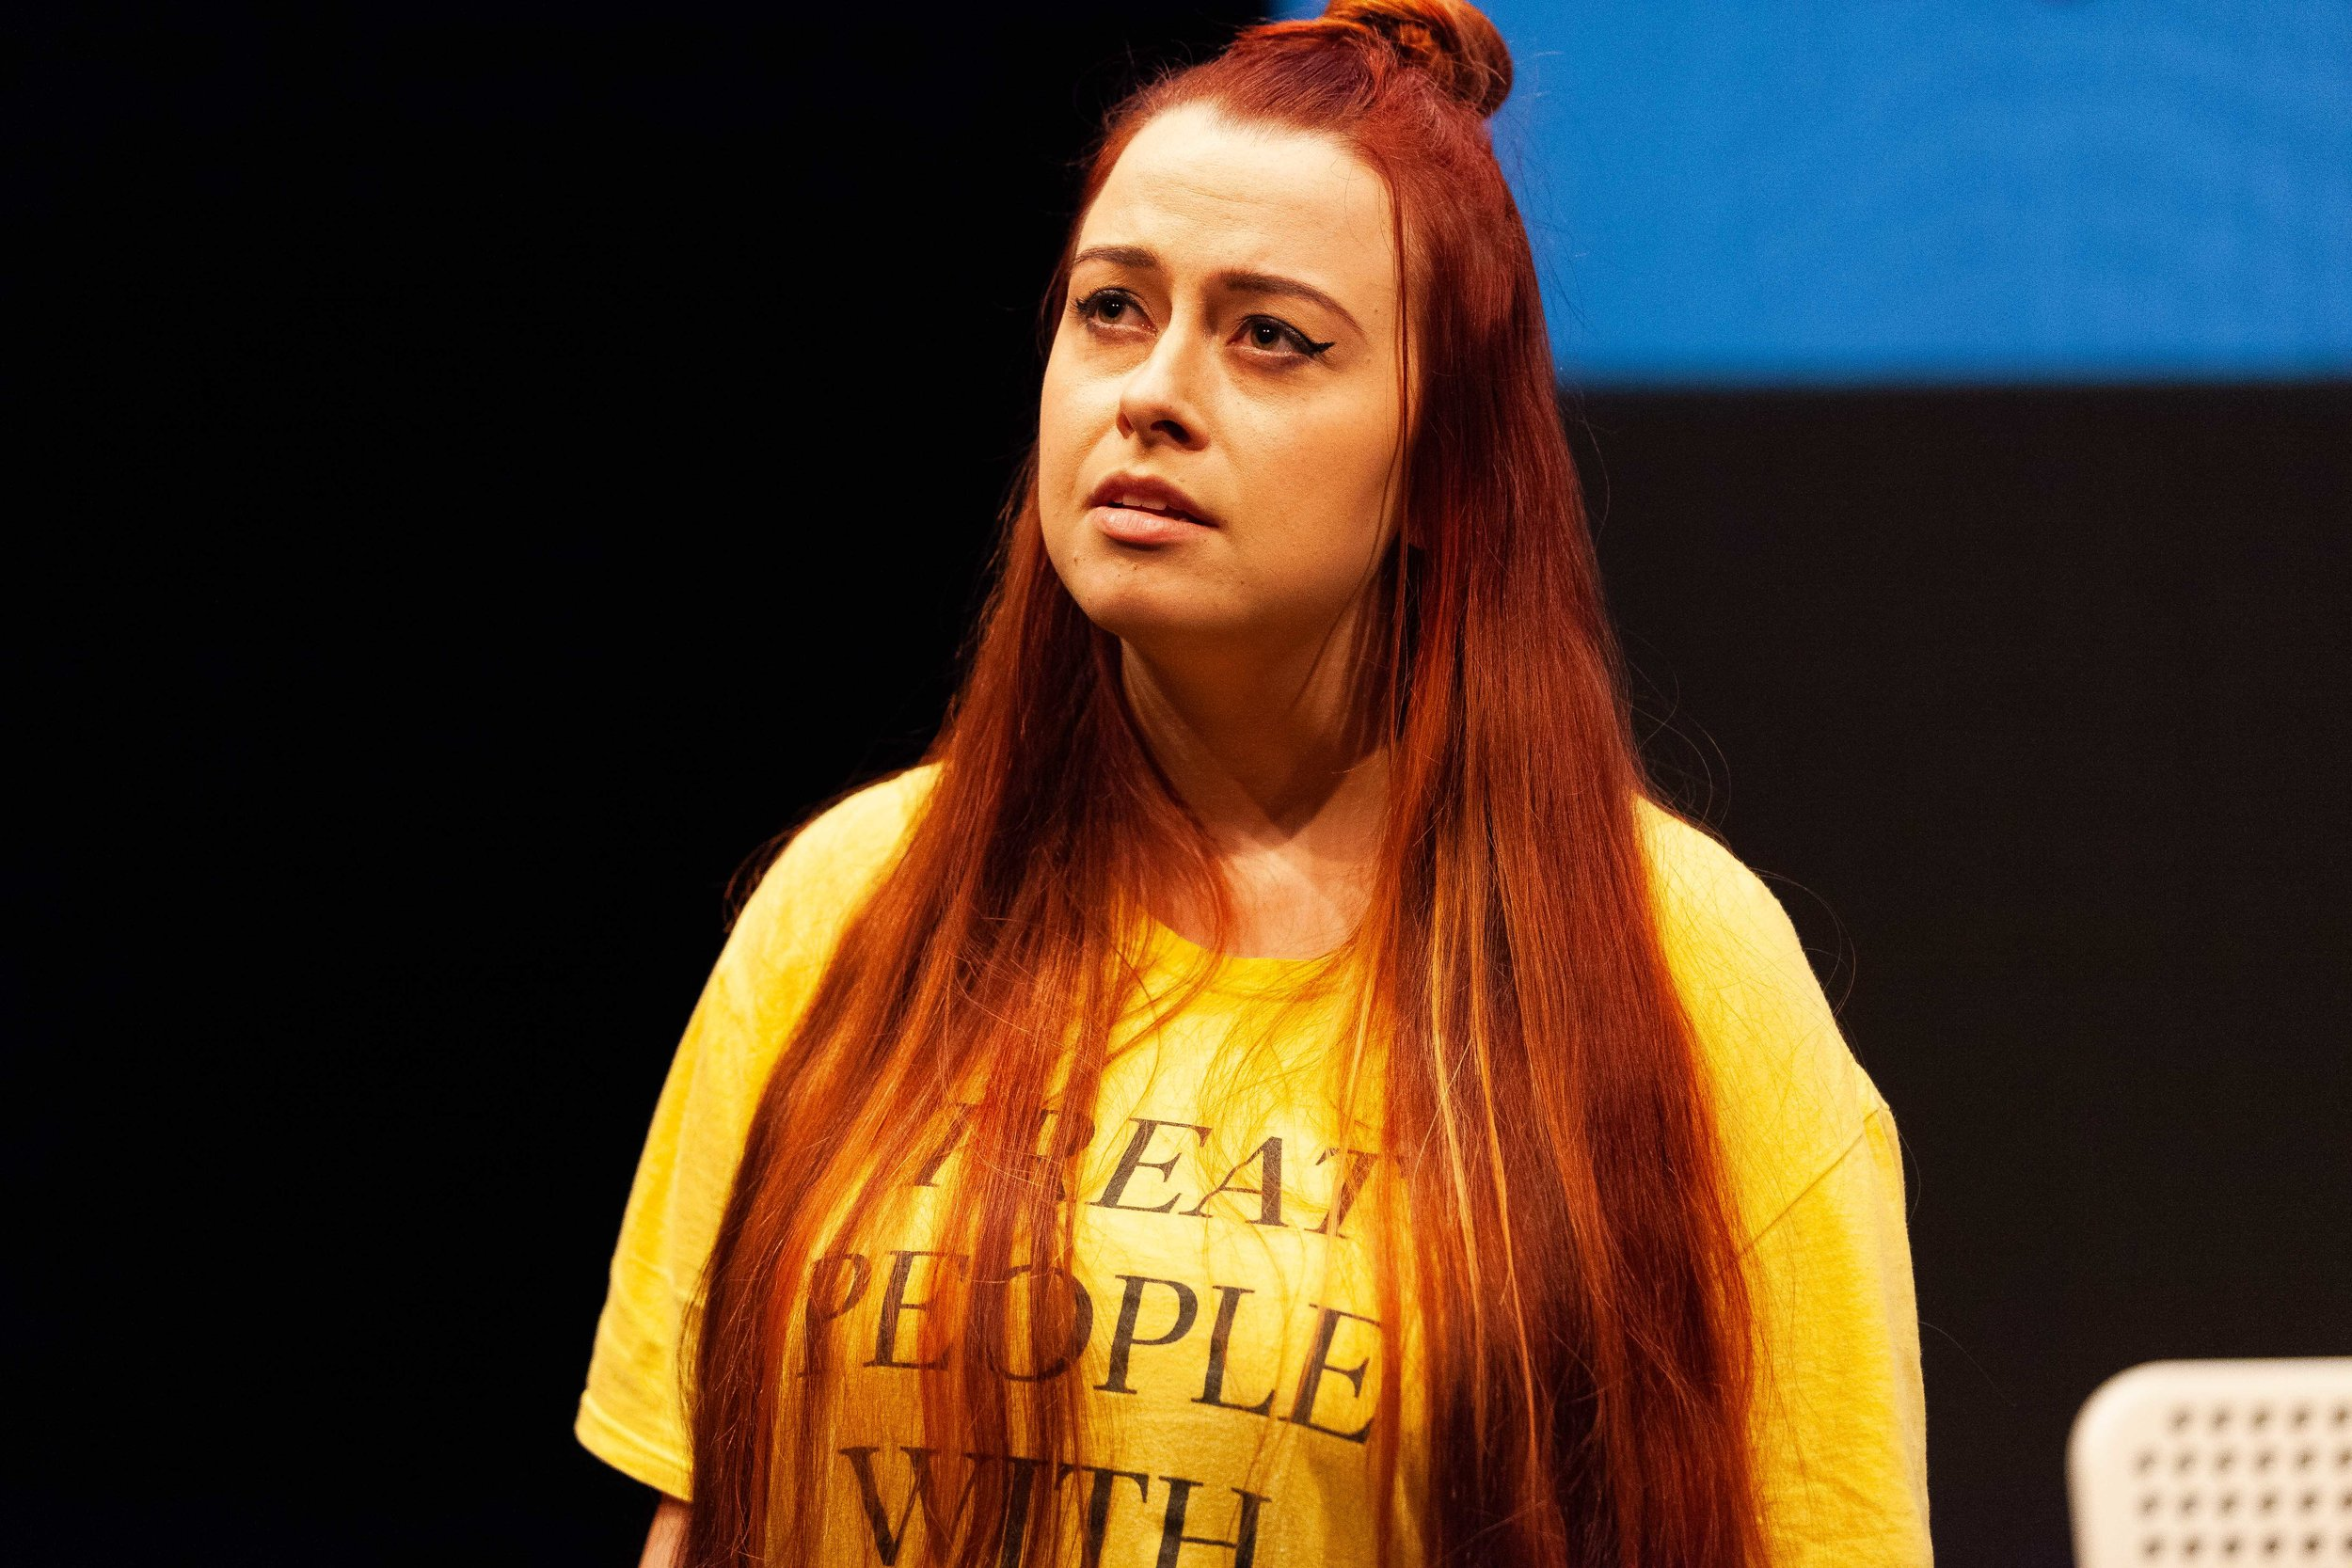 Madeleine Little performing in  Hold  (April 2019) at the Roundhouse Theatre.